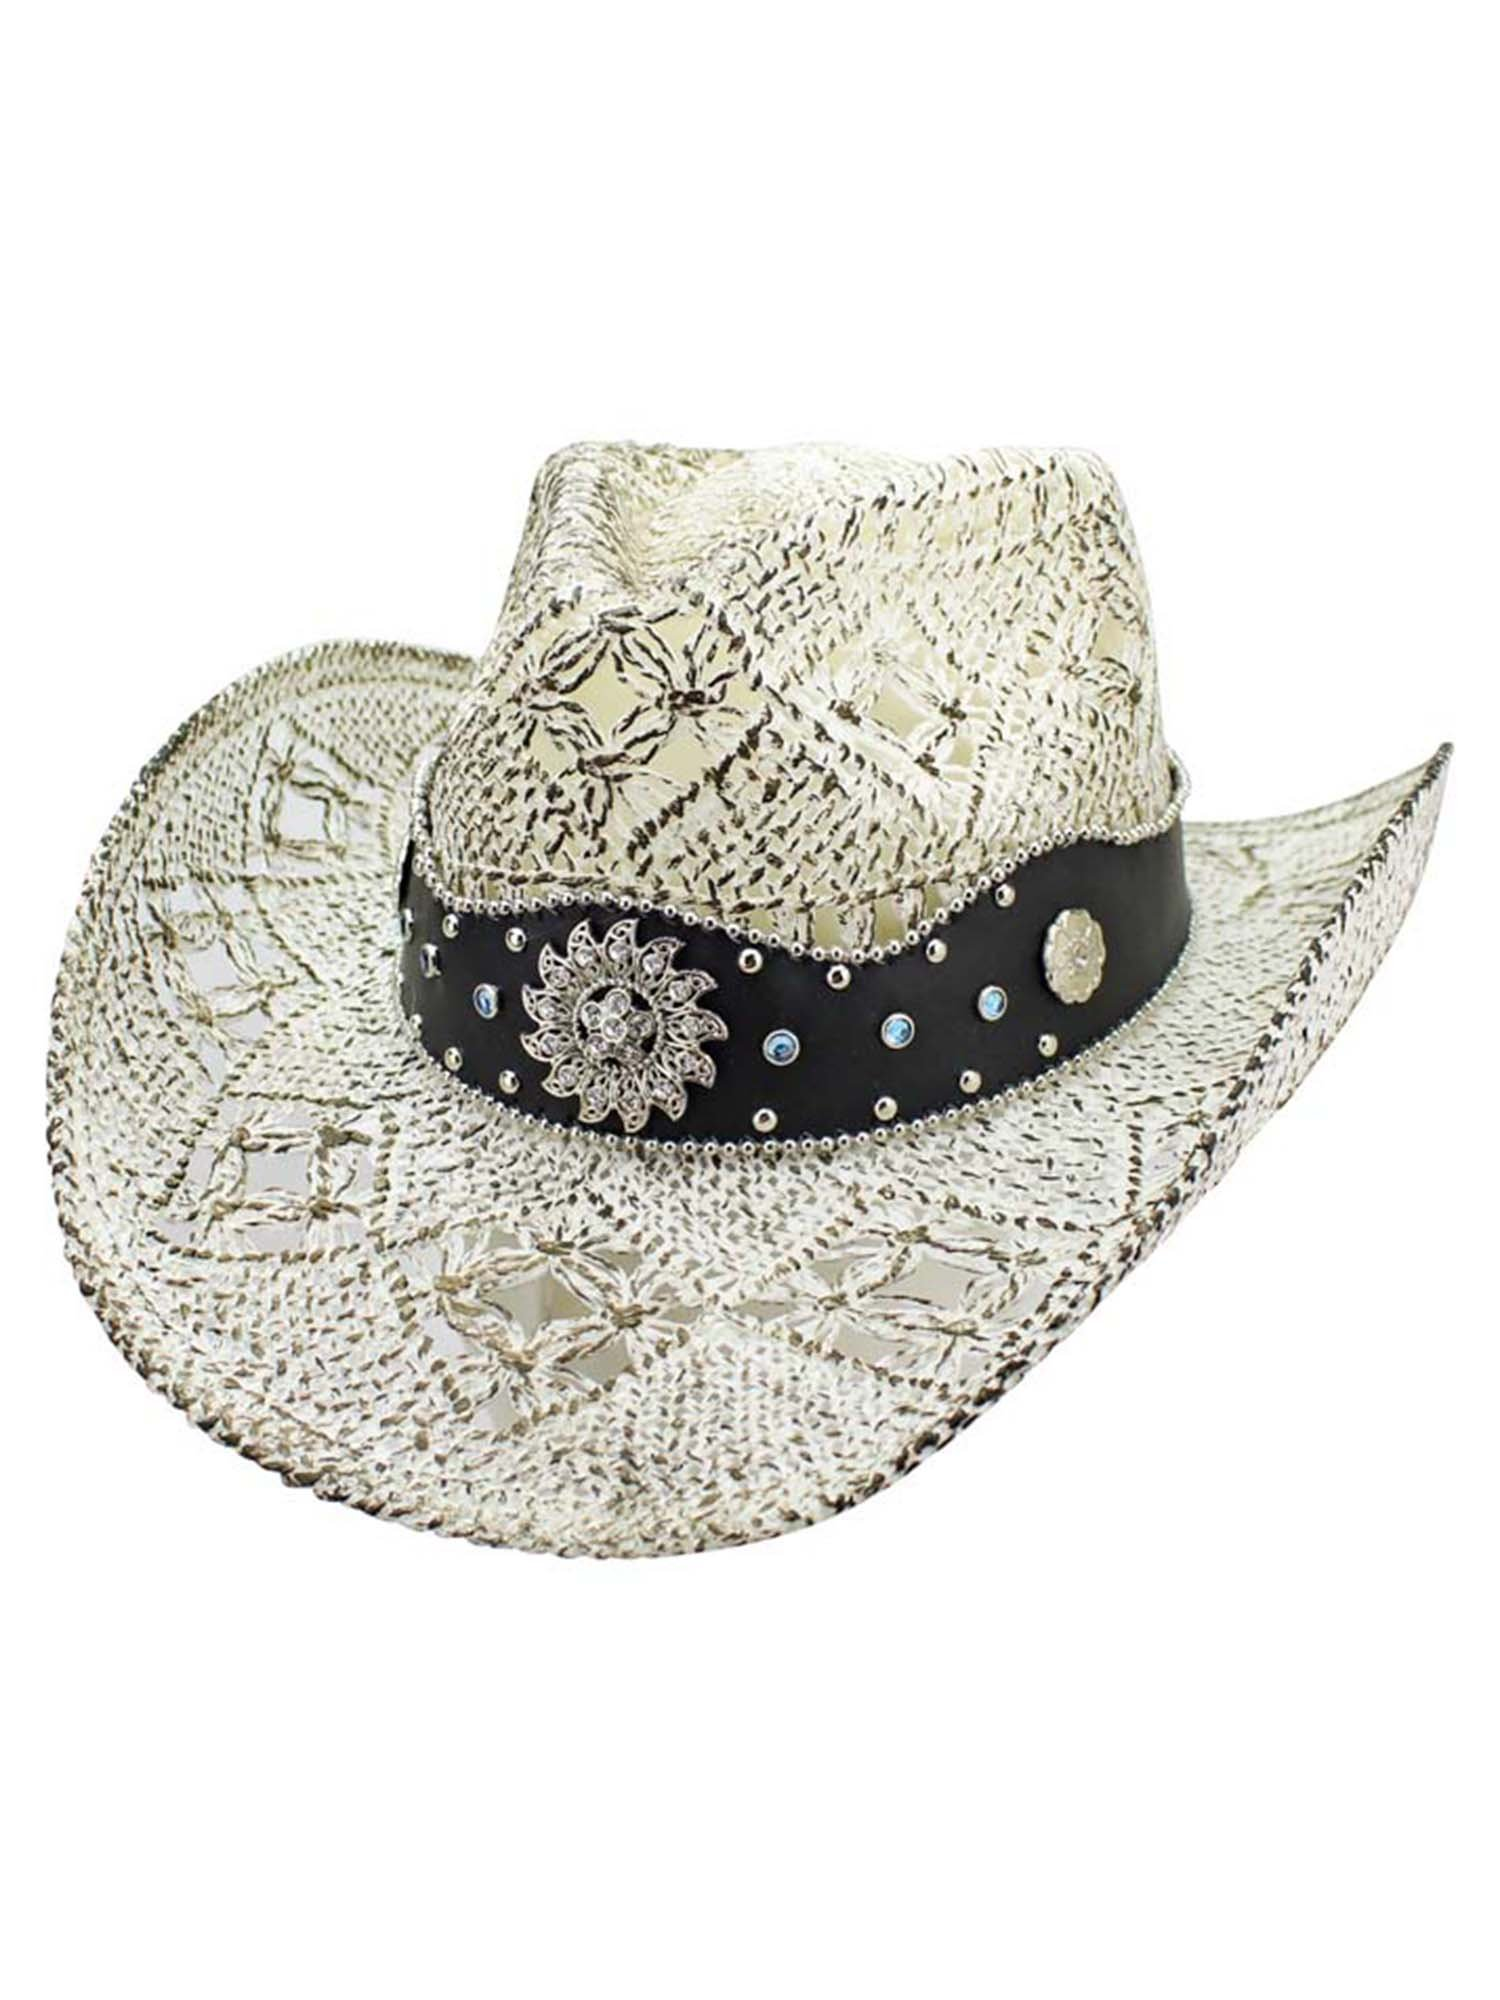 Luxury Divas White Antiqued Straw Cowboy Hat with Jeweled Band Size Small by Luxury Divas